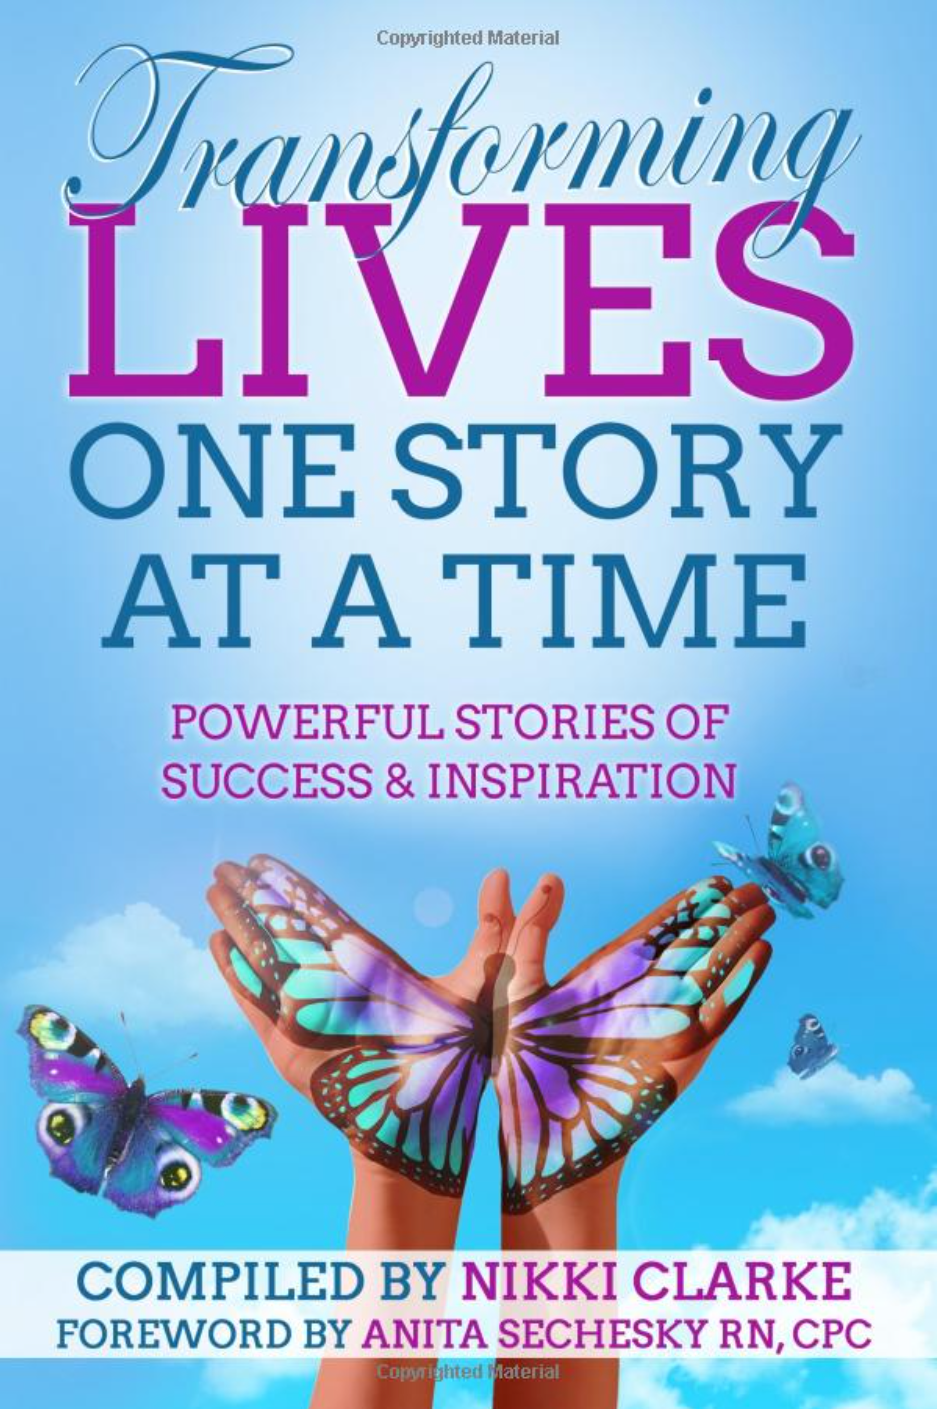 Transforming Lives One Story at a Time